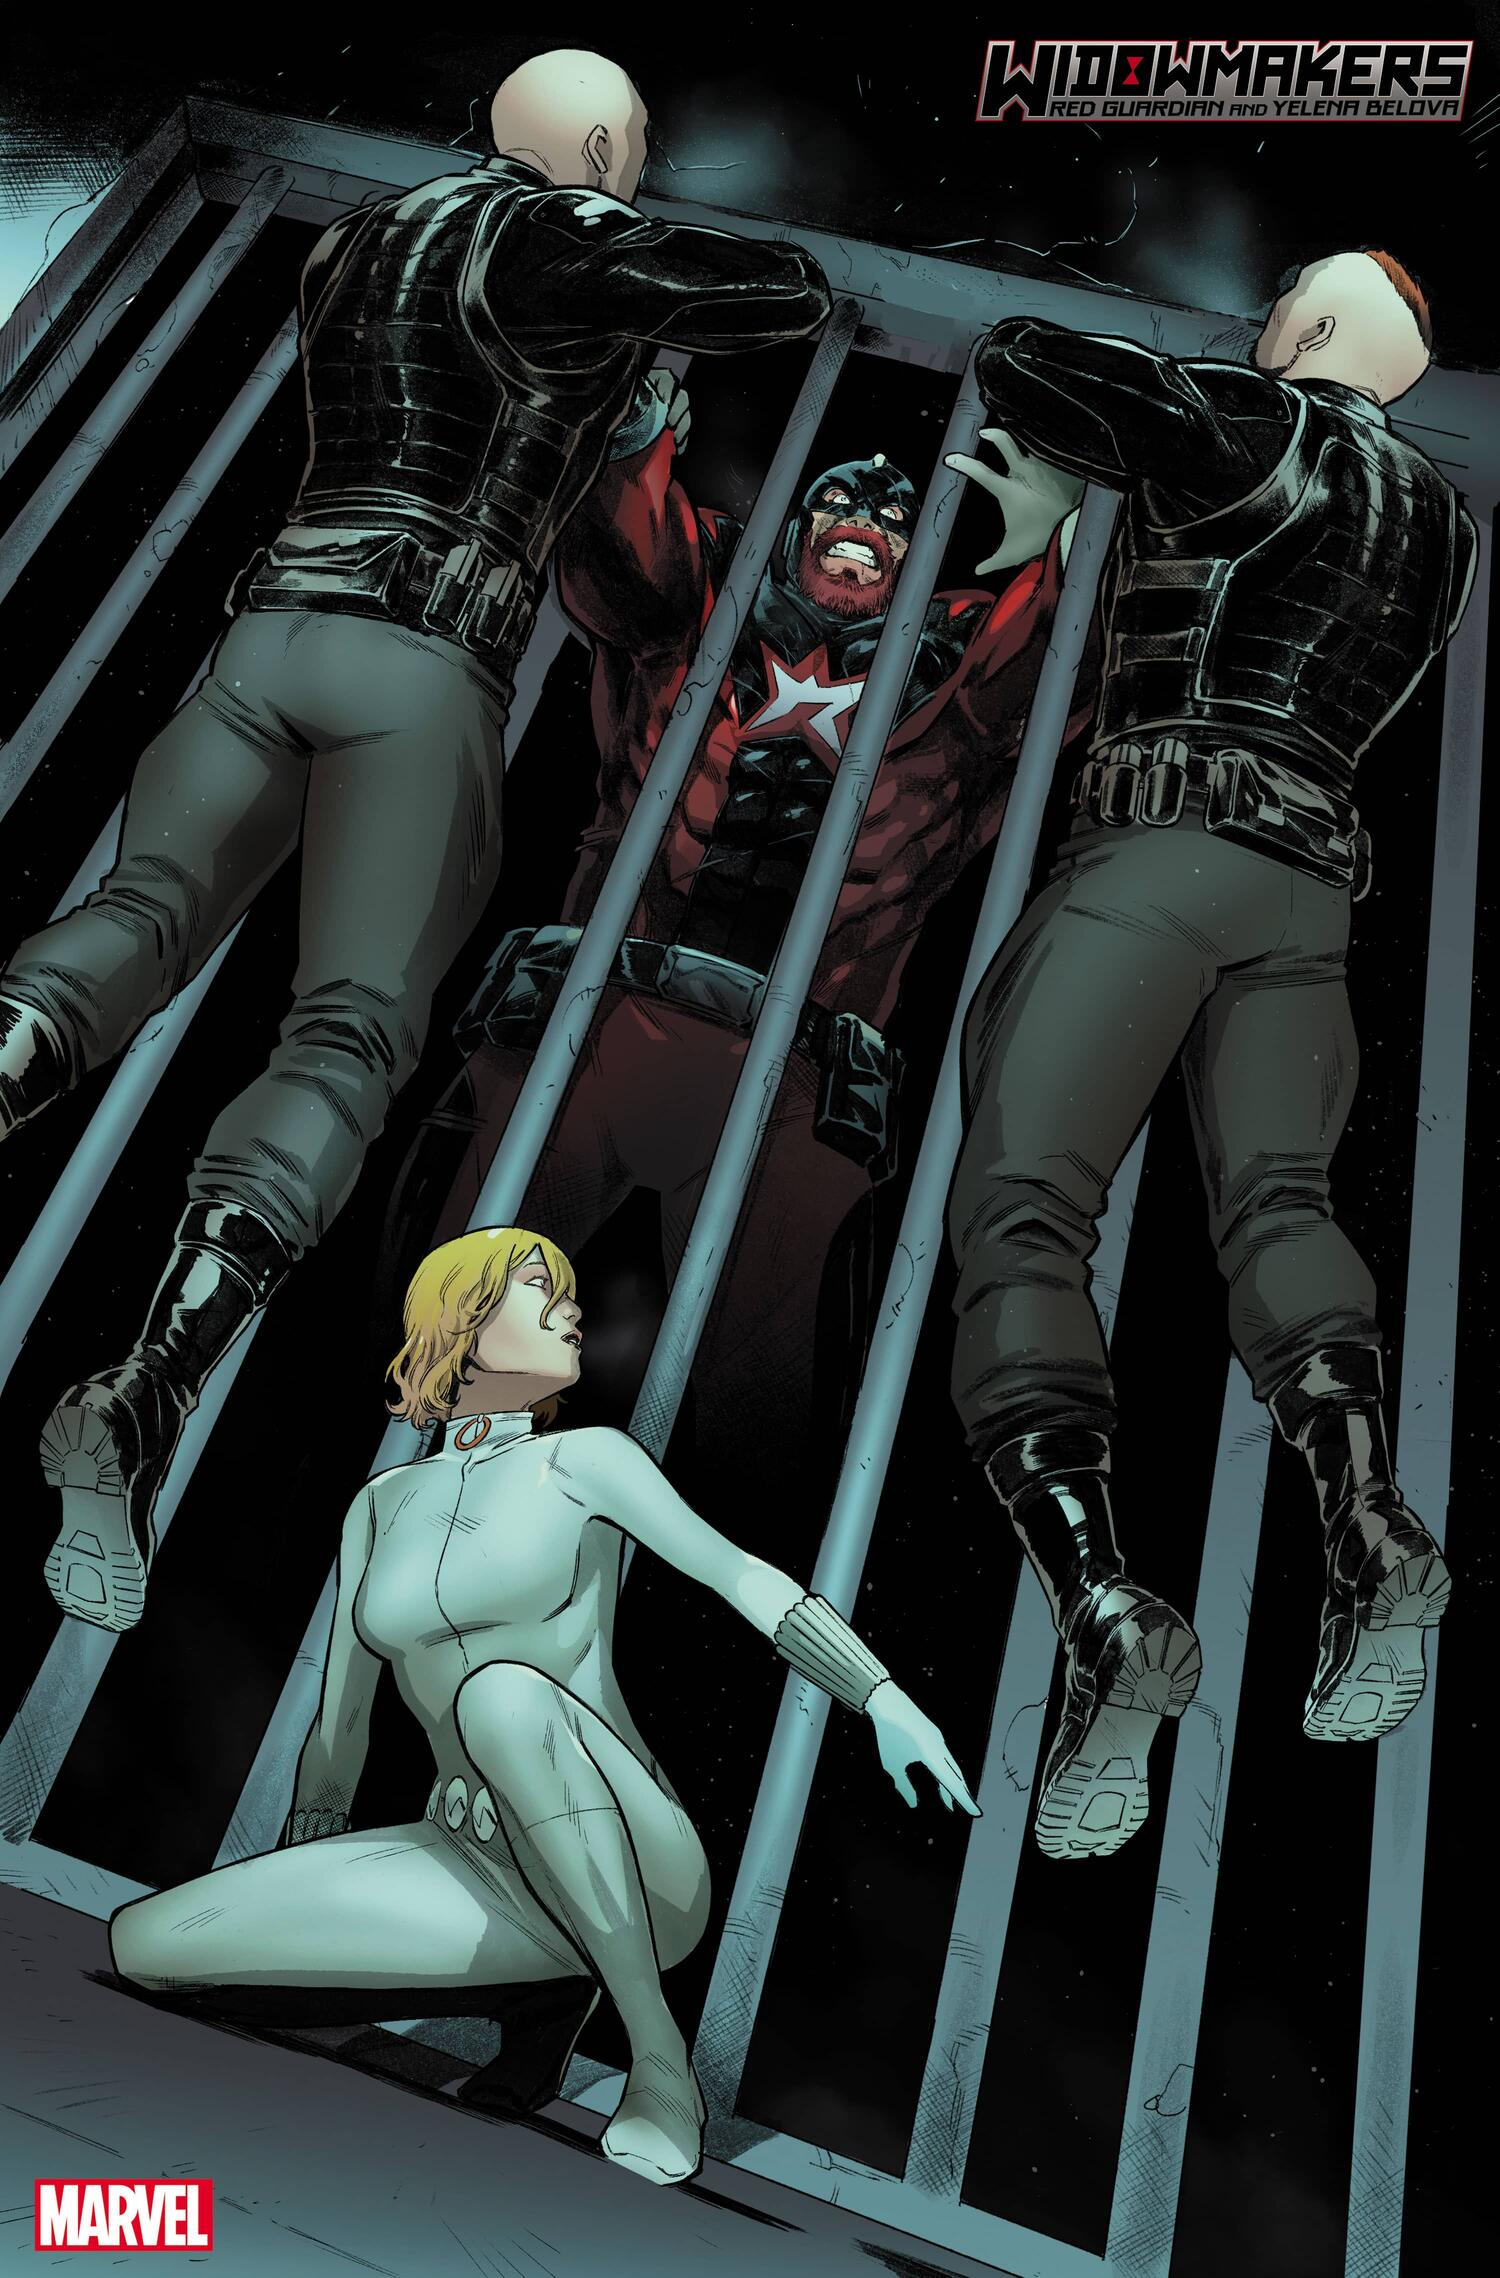 WIDOWMAKERS: RED GUARDIAN AND YELENA BELOVA #1 preview interiors by Michele Bandini, Elisabetta D'Amico, and Erick Arciniega